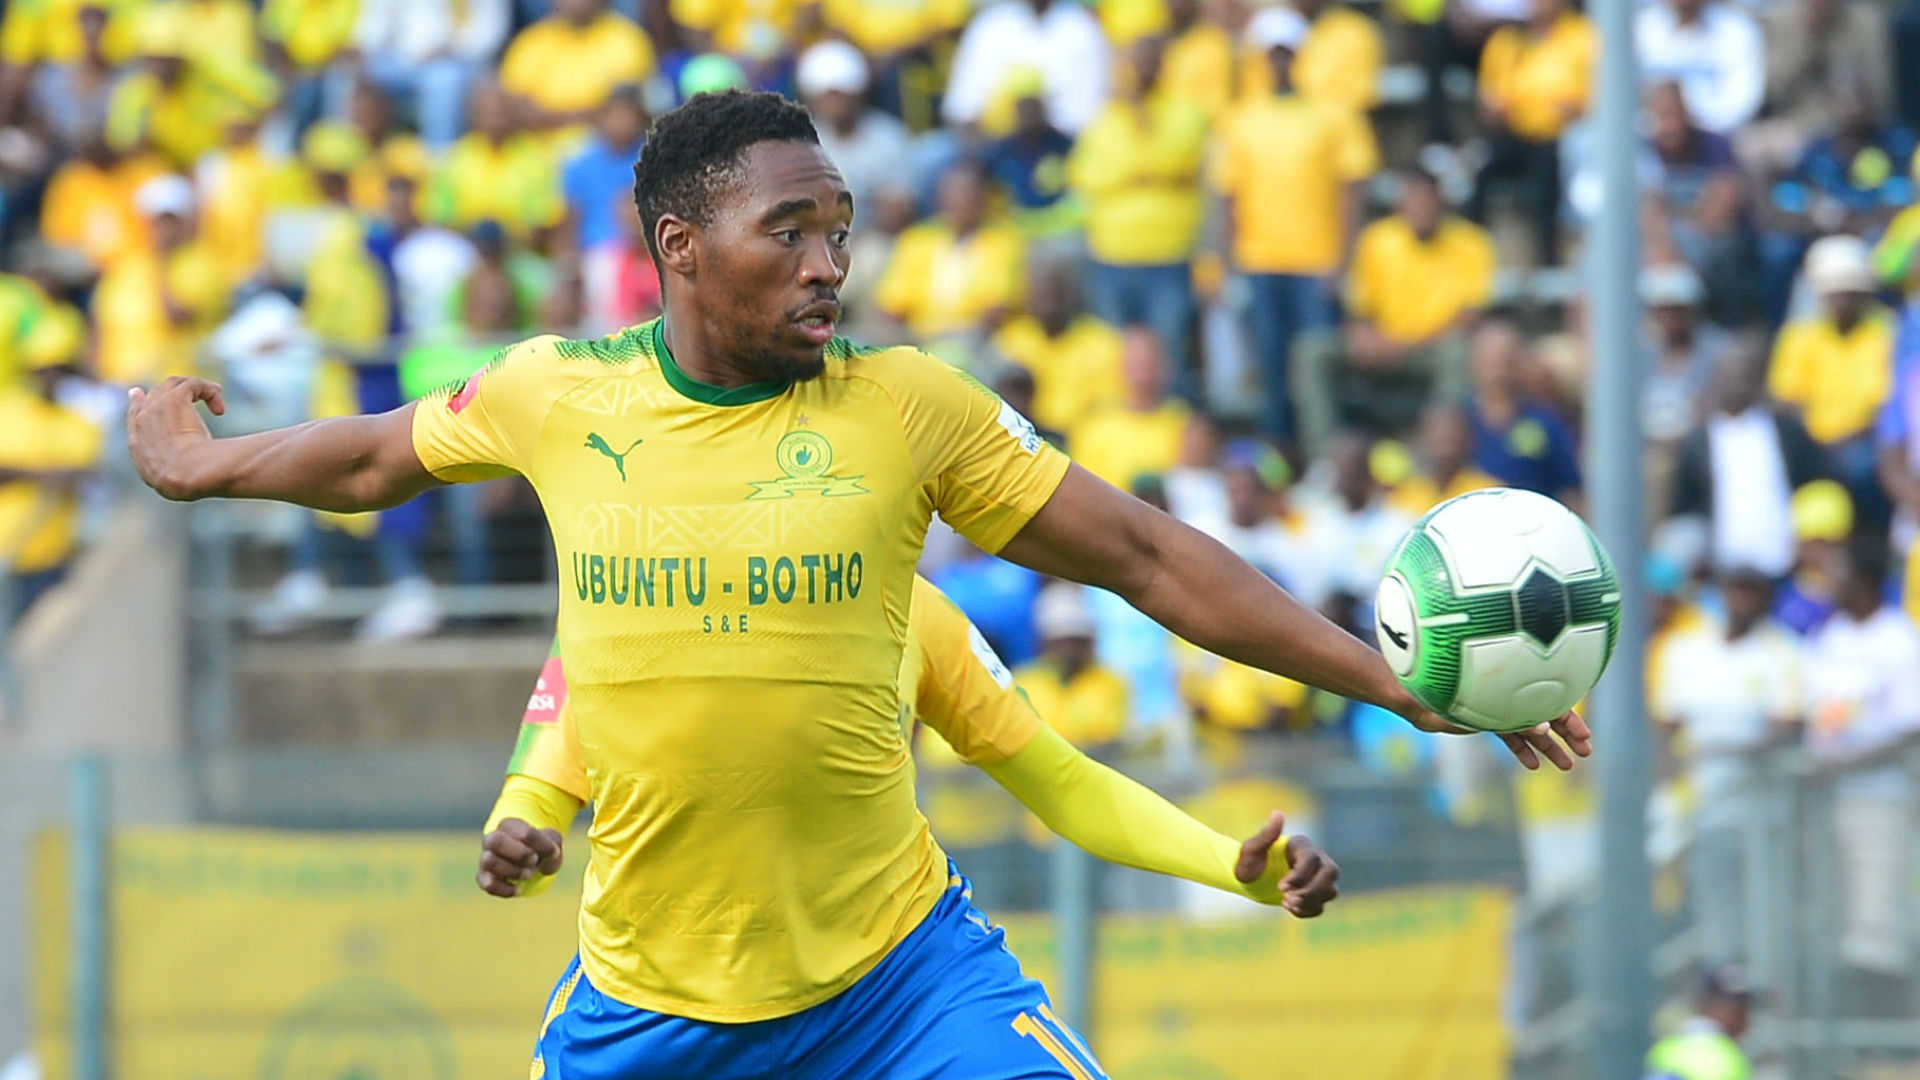 Live Blog: Mamelodi Sundowns visit Cote d'Or, Orlando Pirates welcome Chippa United & Kaizer Chiefs host Polokwane City